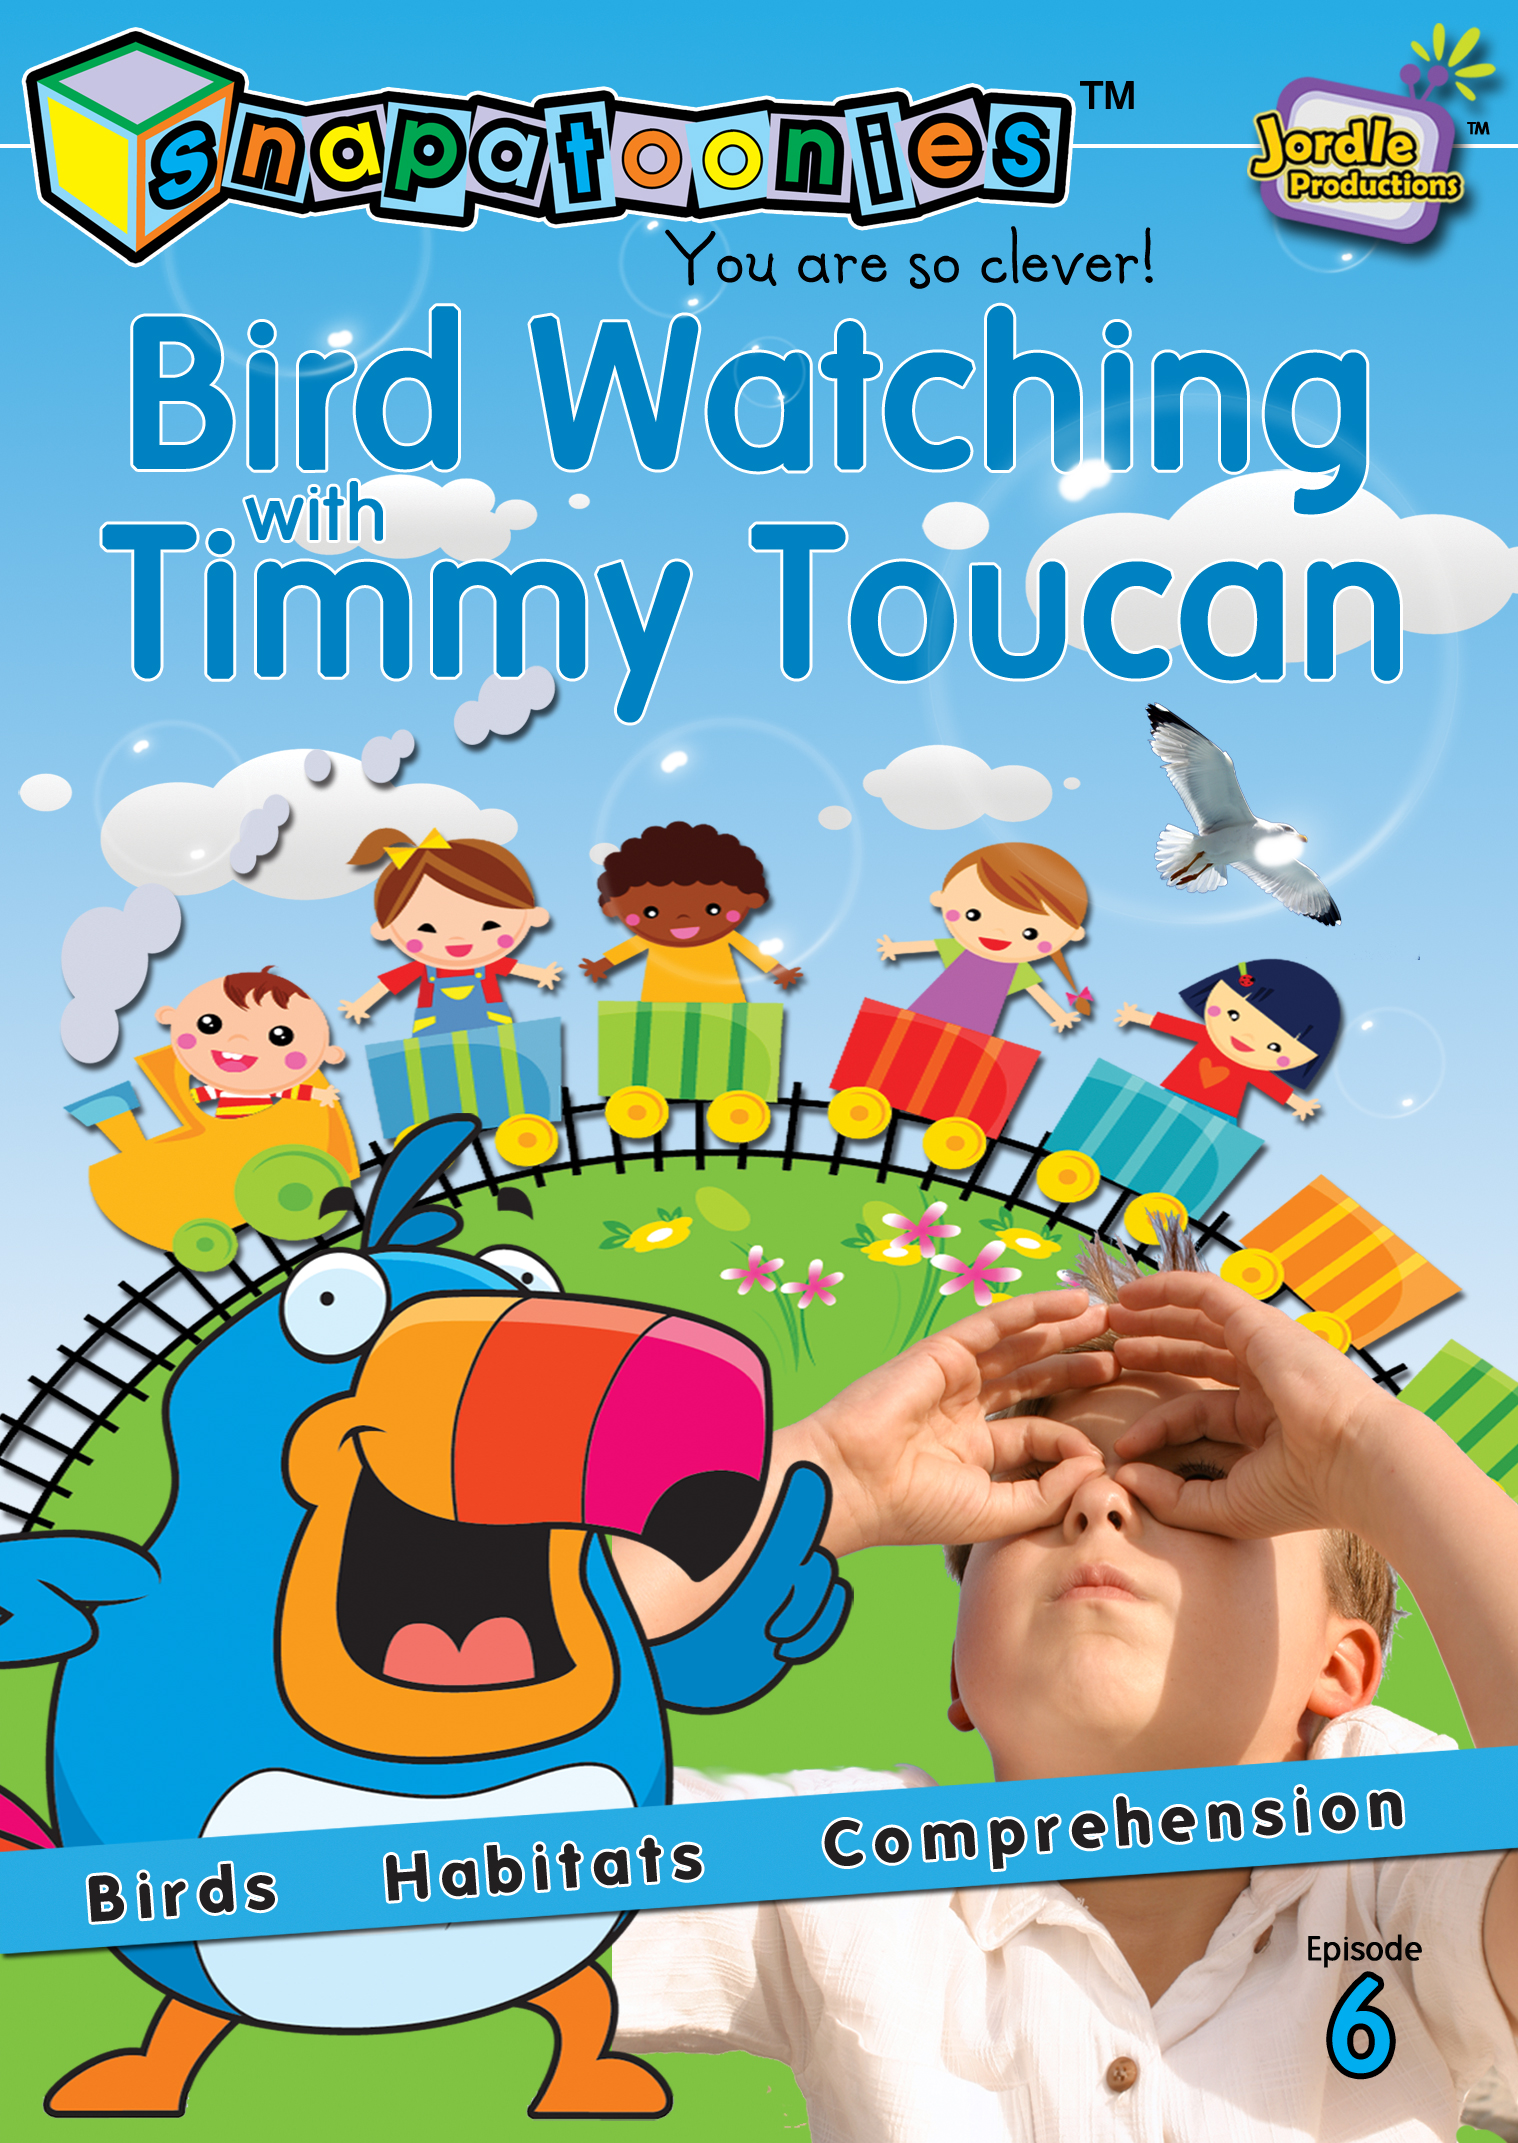 Snapatoonies Birdwatching with Timmy Toucan